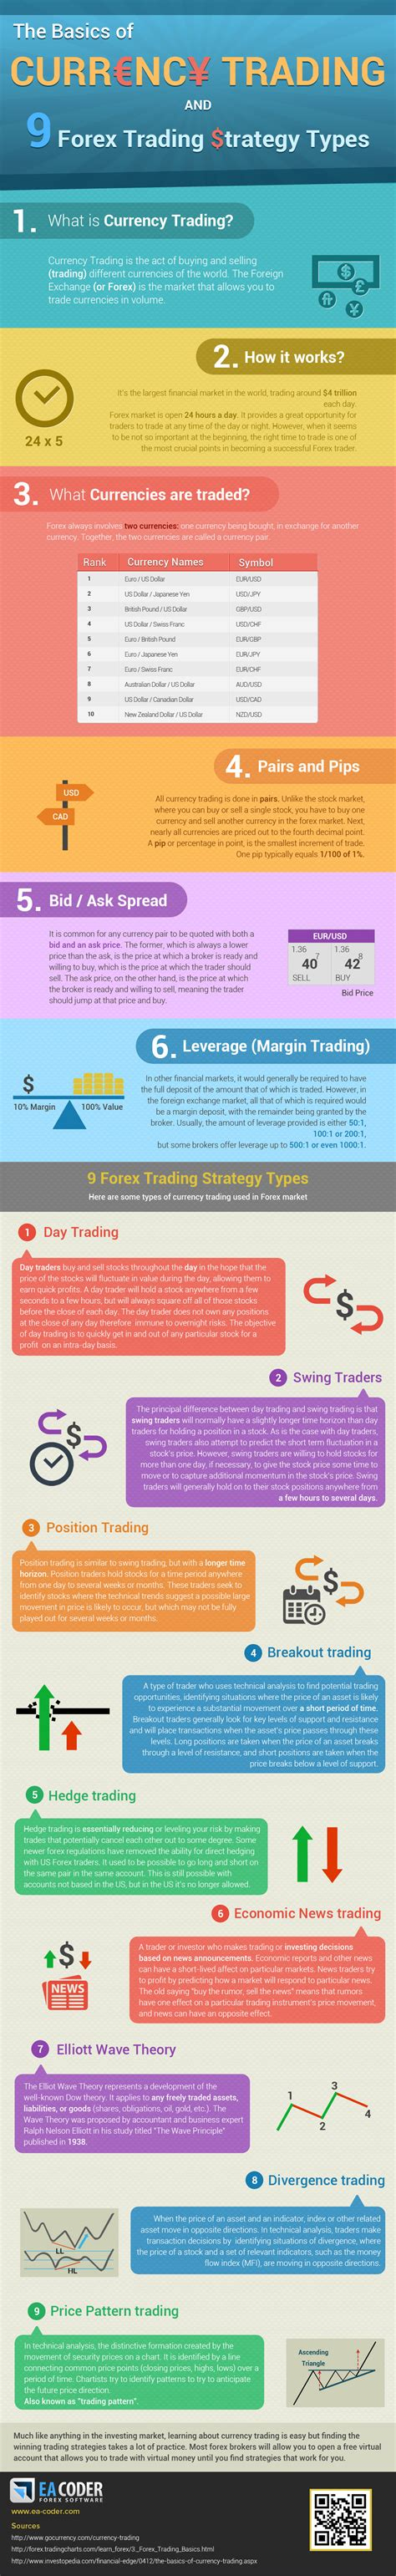 currency broker infographic the basics of currency trading